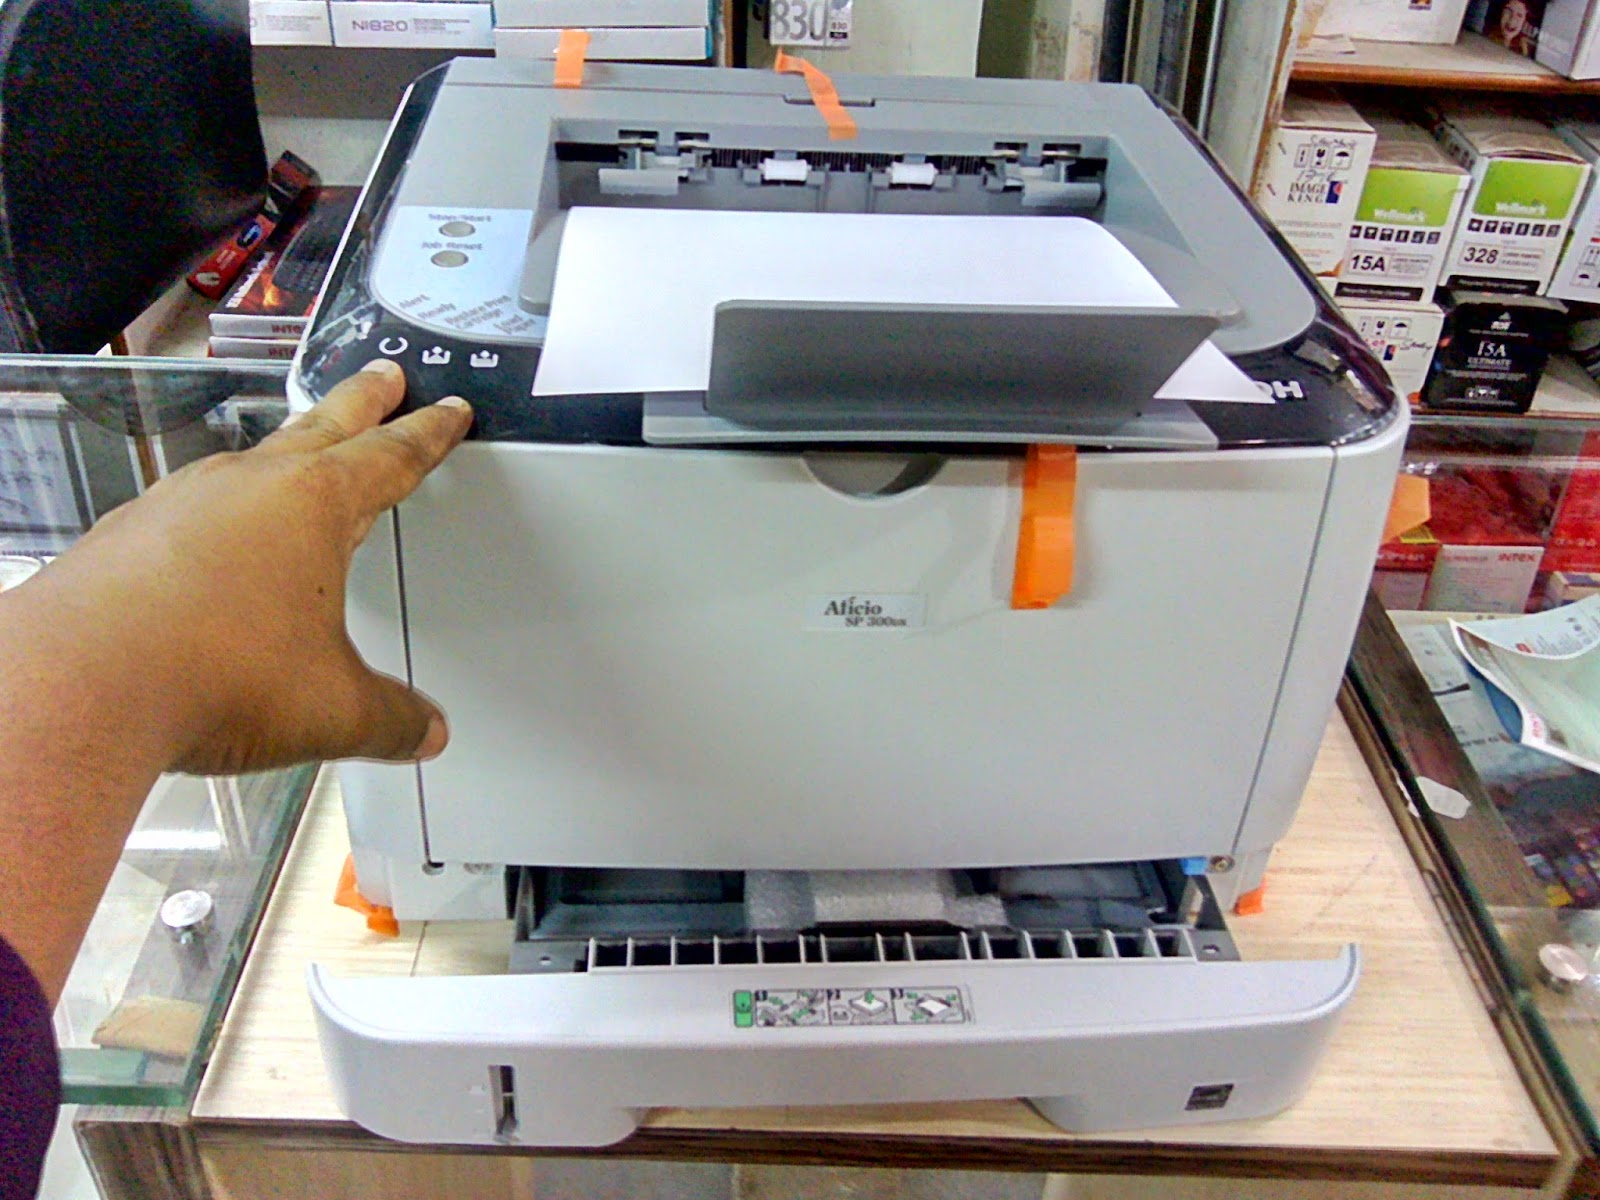 Ricoh-Aficio SP 300DN Duplex Printer Price, Specification & Unboxing picture, image, photo